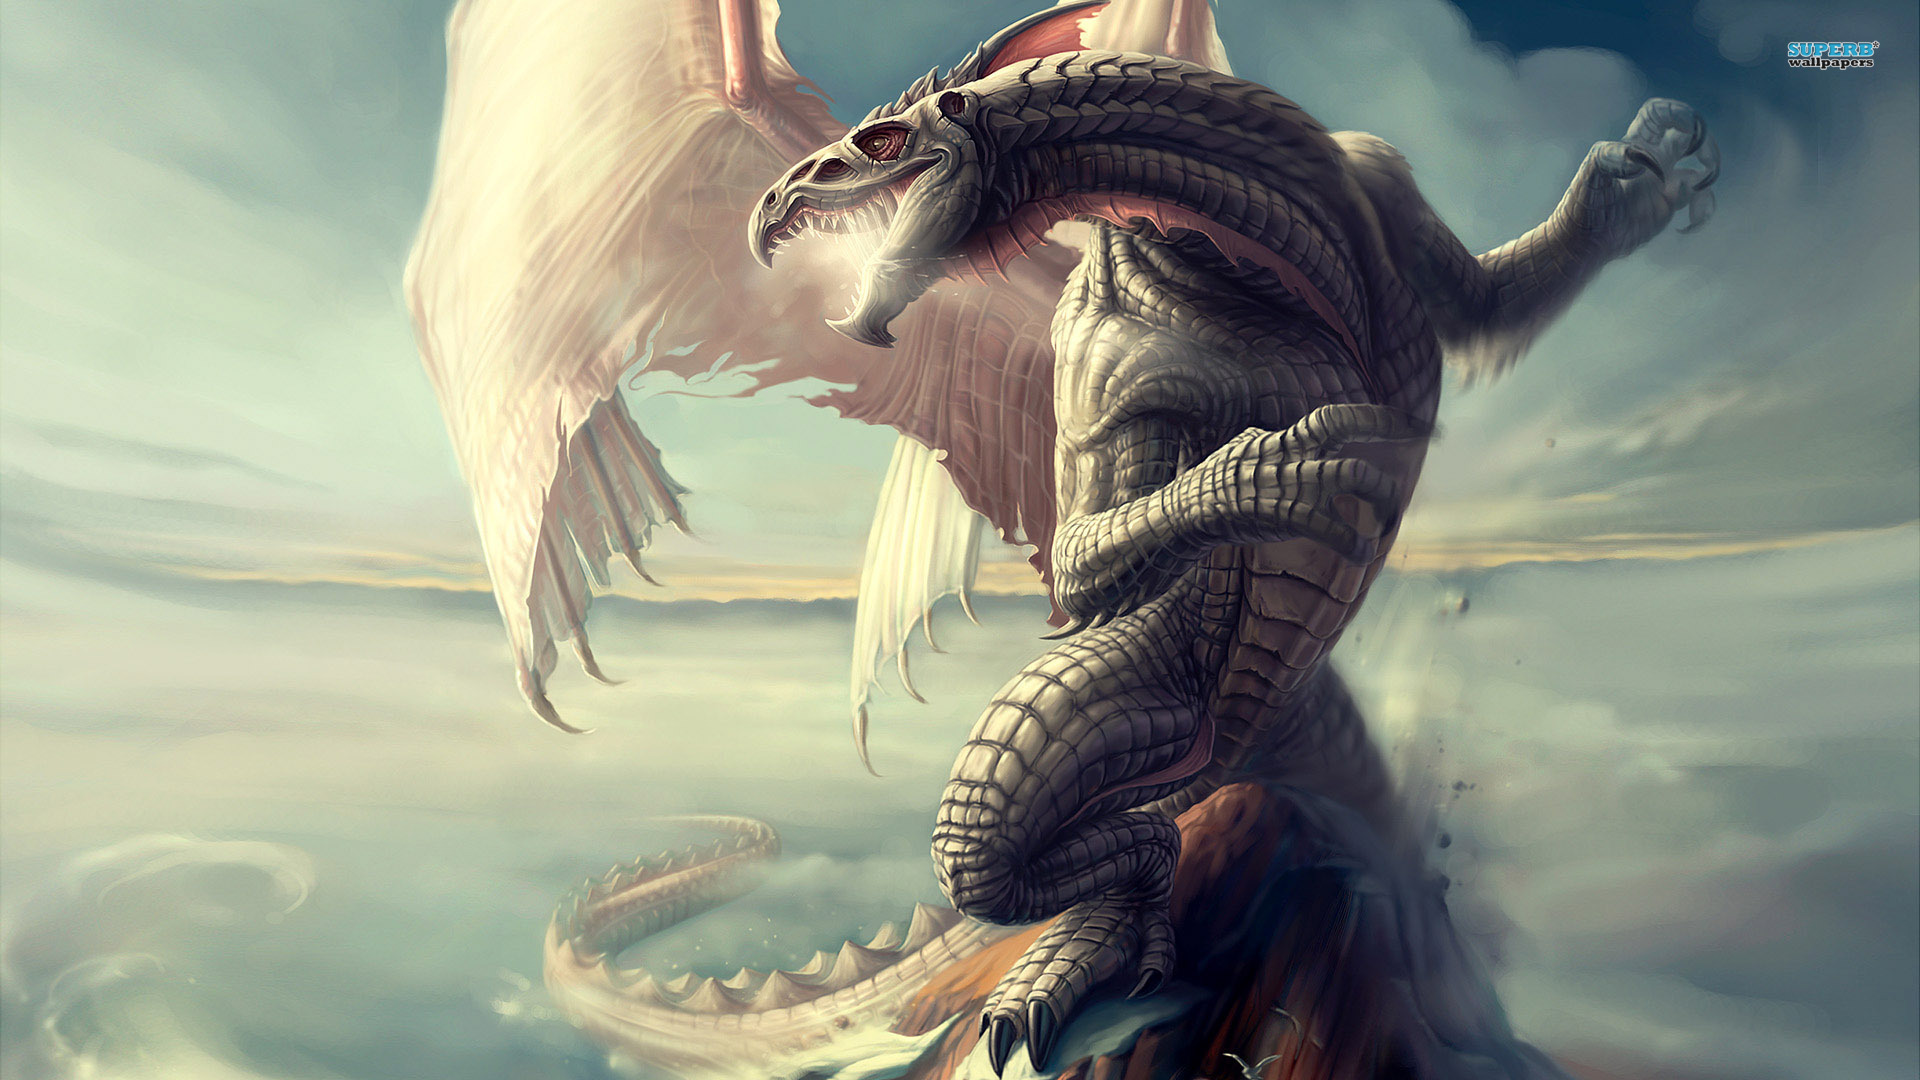 Dragon Full HD Wallpapers download 1080p desktop backgrounds 1920x1080